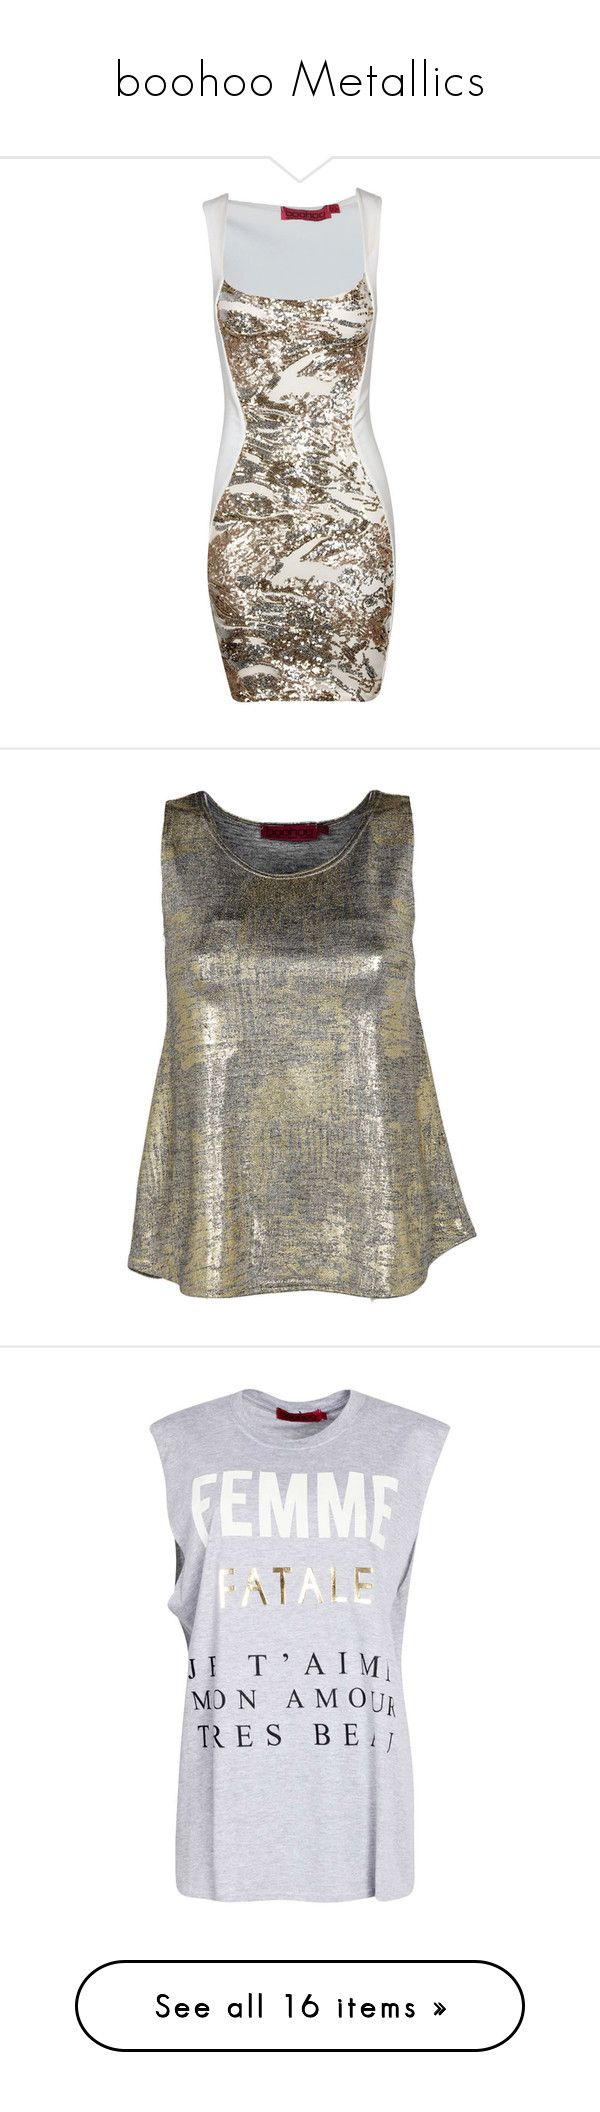 """boohoo Metallics"" by boohoo ❤ liked on Polyvore featuring dresses, vestidos, sequin bodycon dress, body con dress, brown bodycon dress, sequin embellished dress, bodycon dress, outerwear, vests and tops"